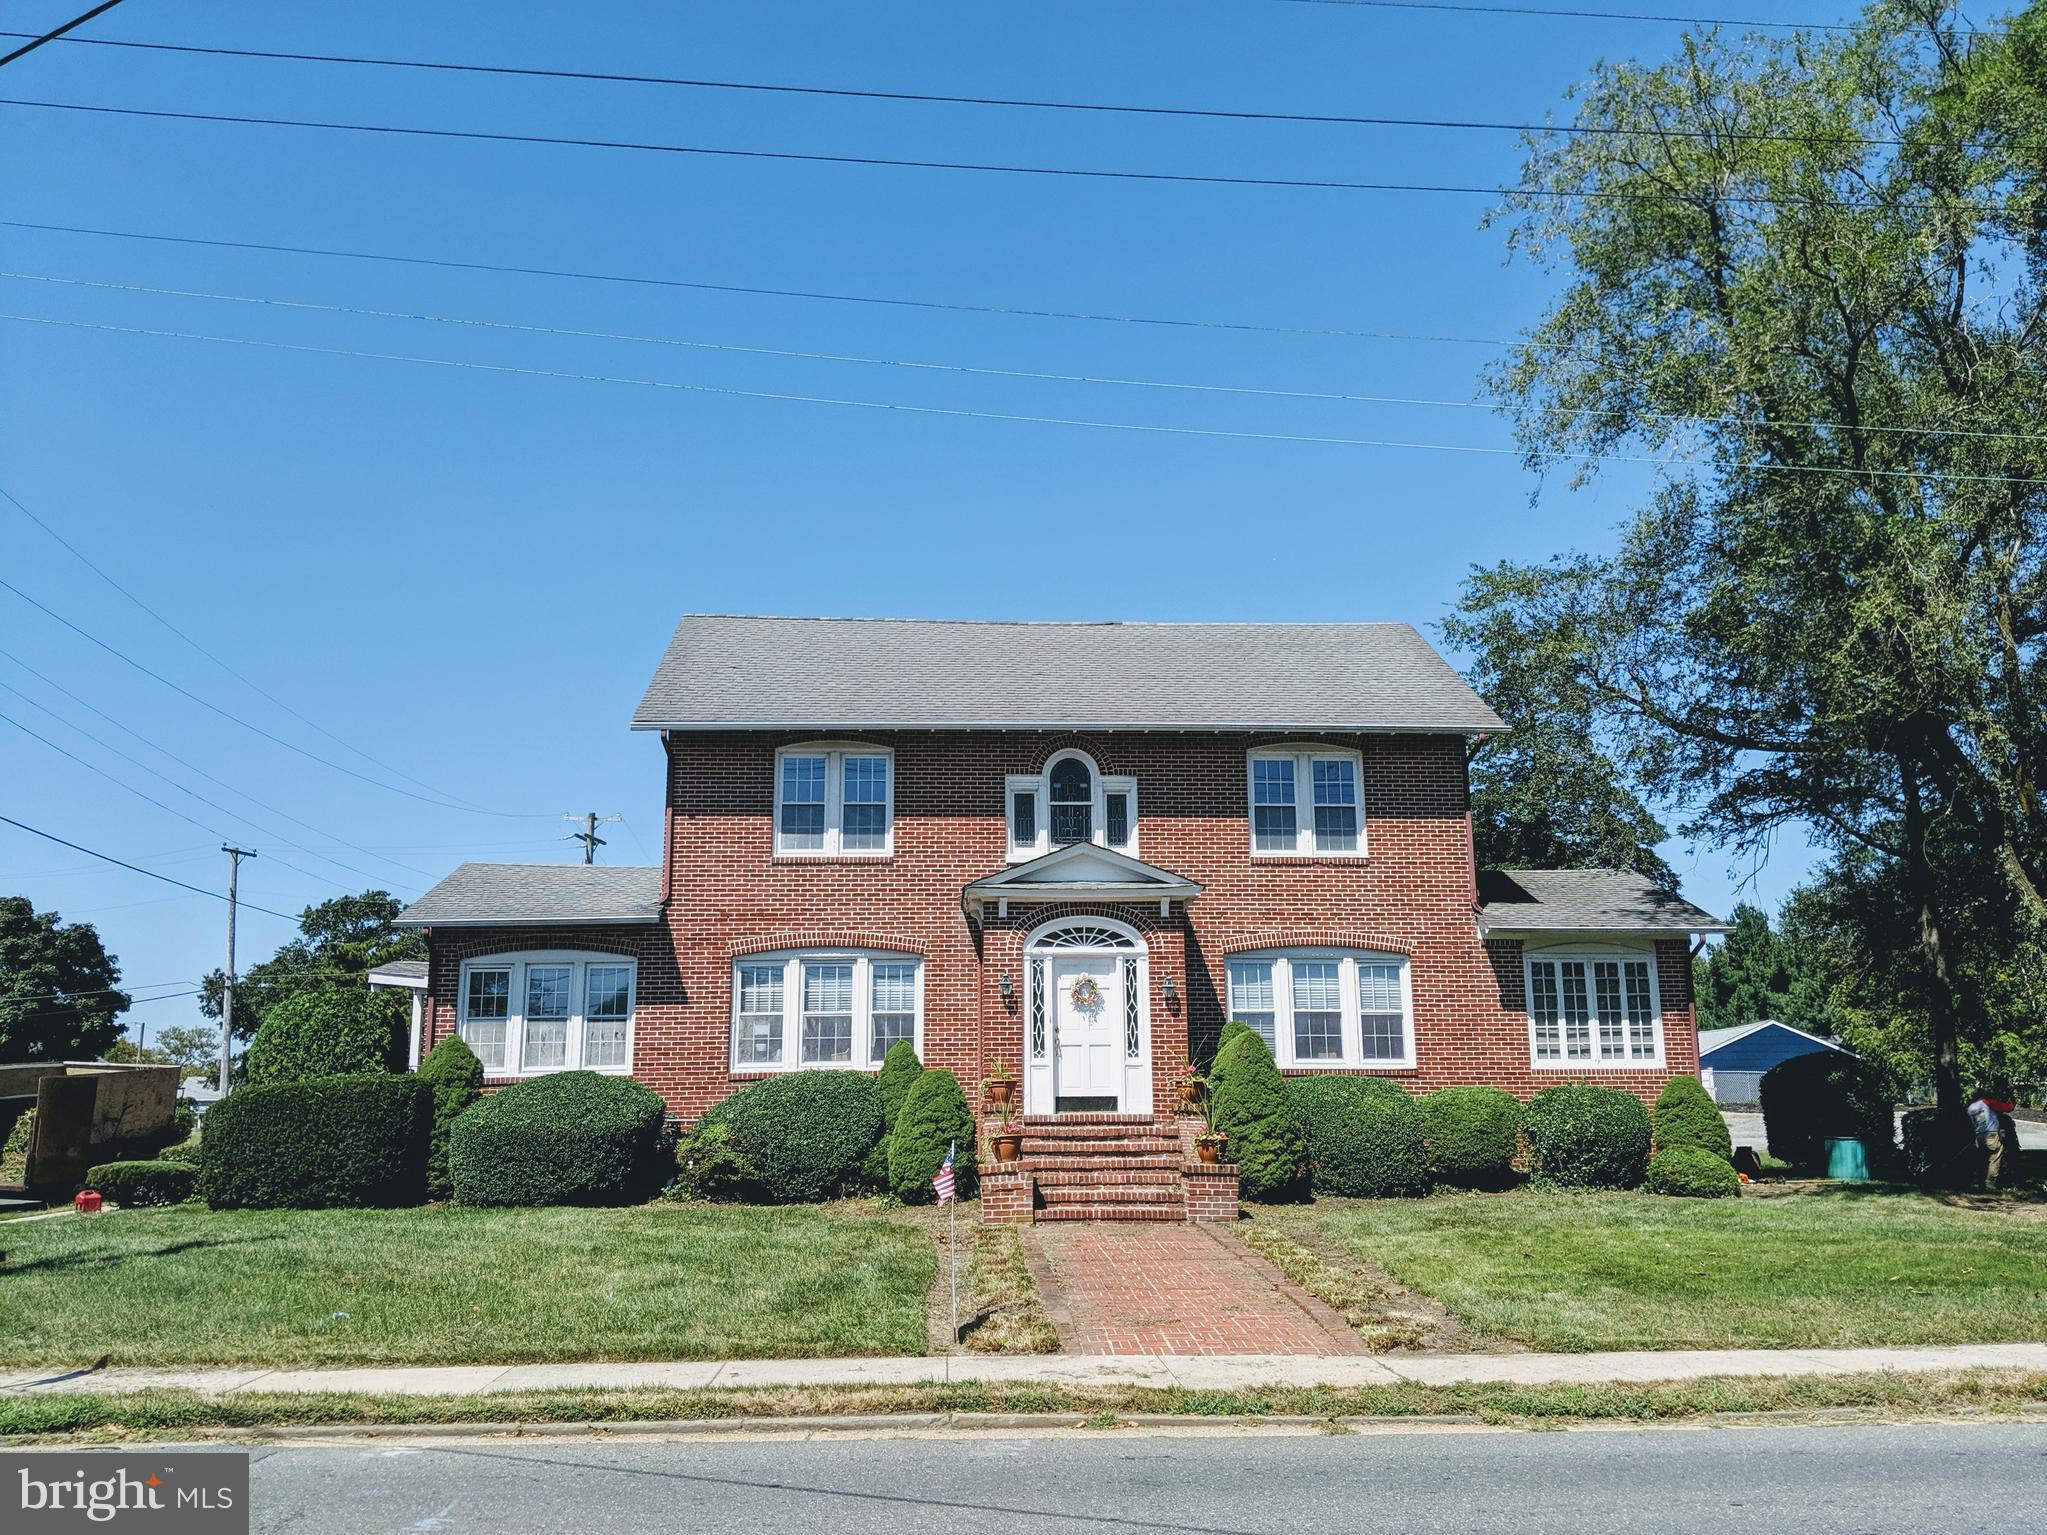 141 SHORE ROAD, SOMERS POINT, NJ 08244